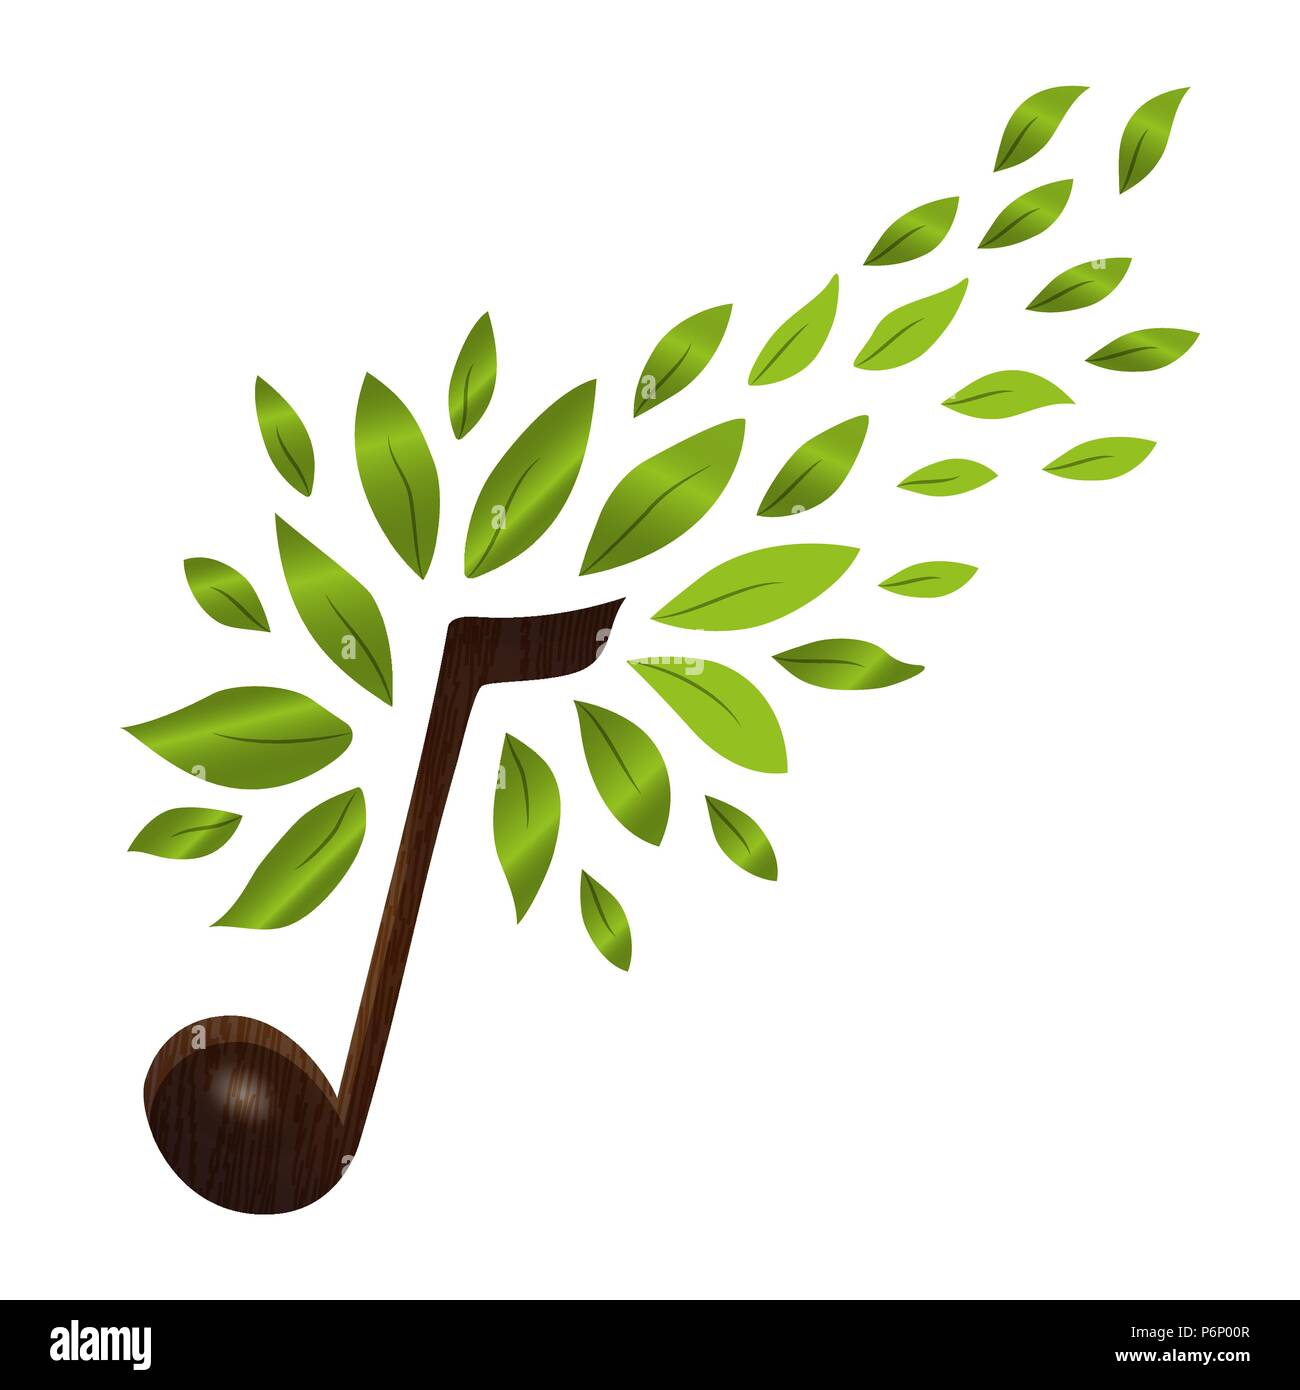 Music Note With Green Tree Leaves Concept Illustration Of Musical